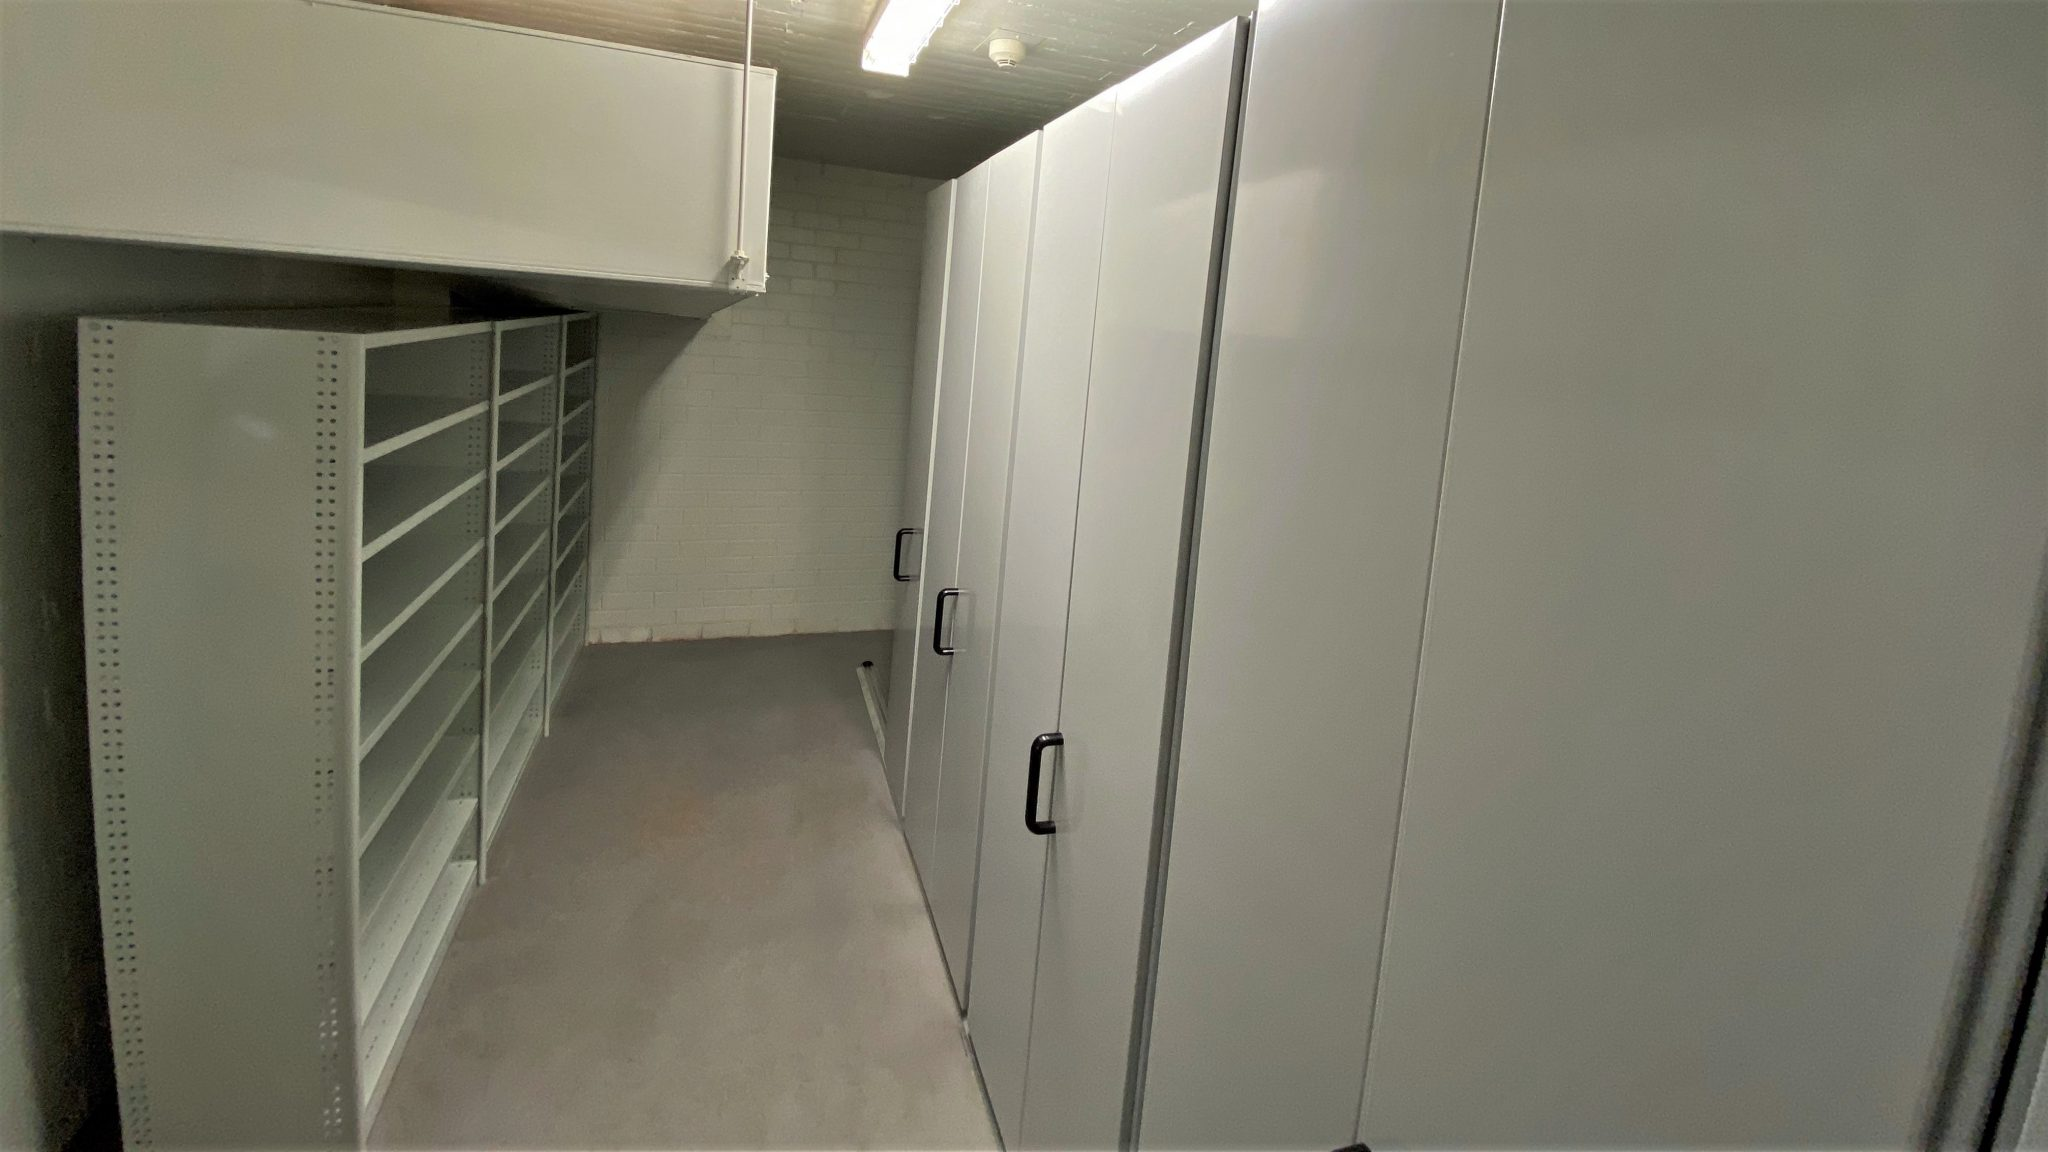 File-stroage-metal-shelving-and-compactus-unit